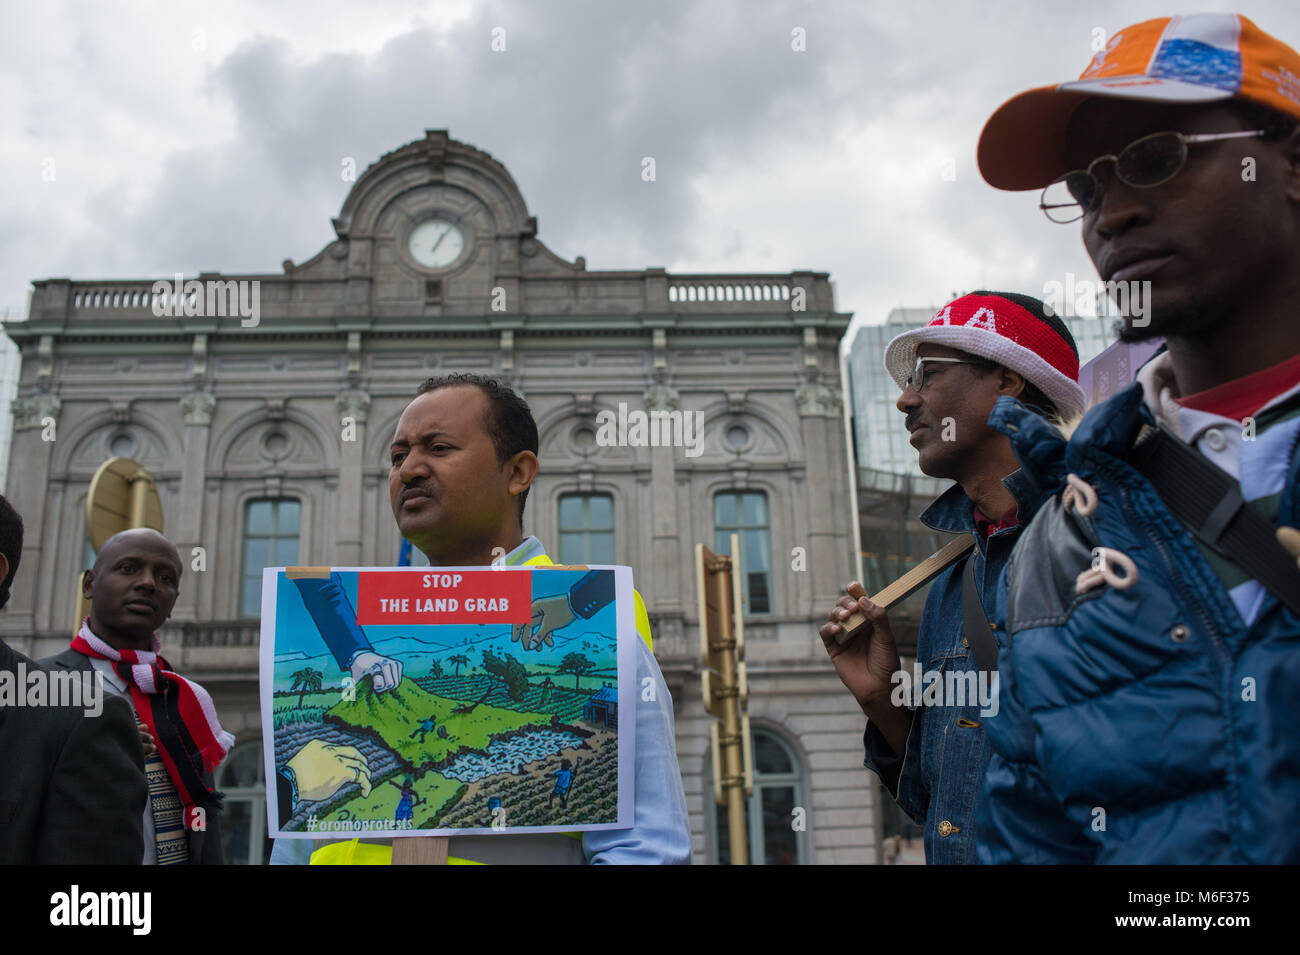 Bruxelles, Ethiopian delegation protest against land grabbing, European parliament. Belgium. - Stock Image